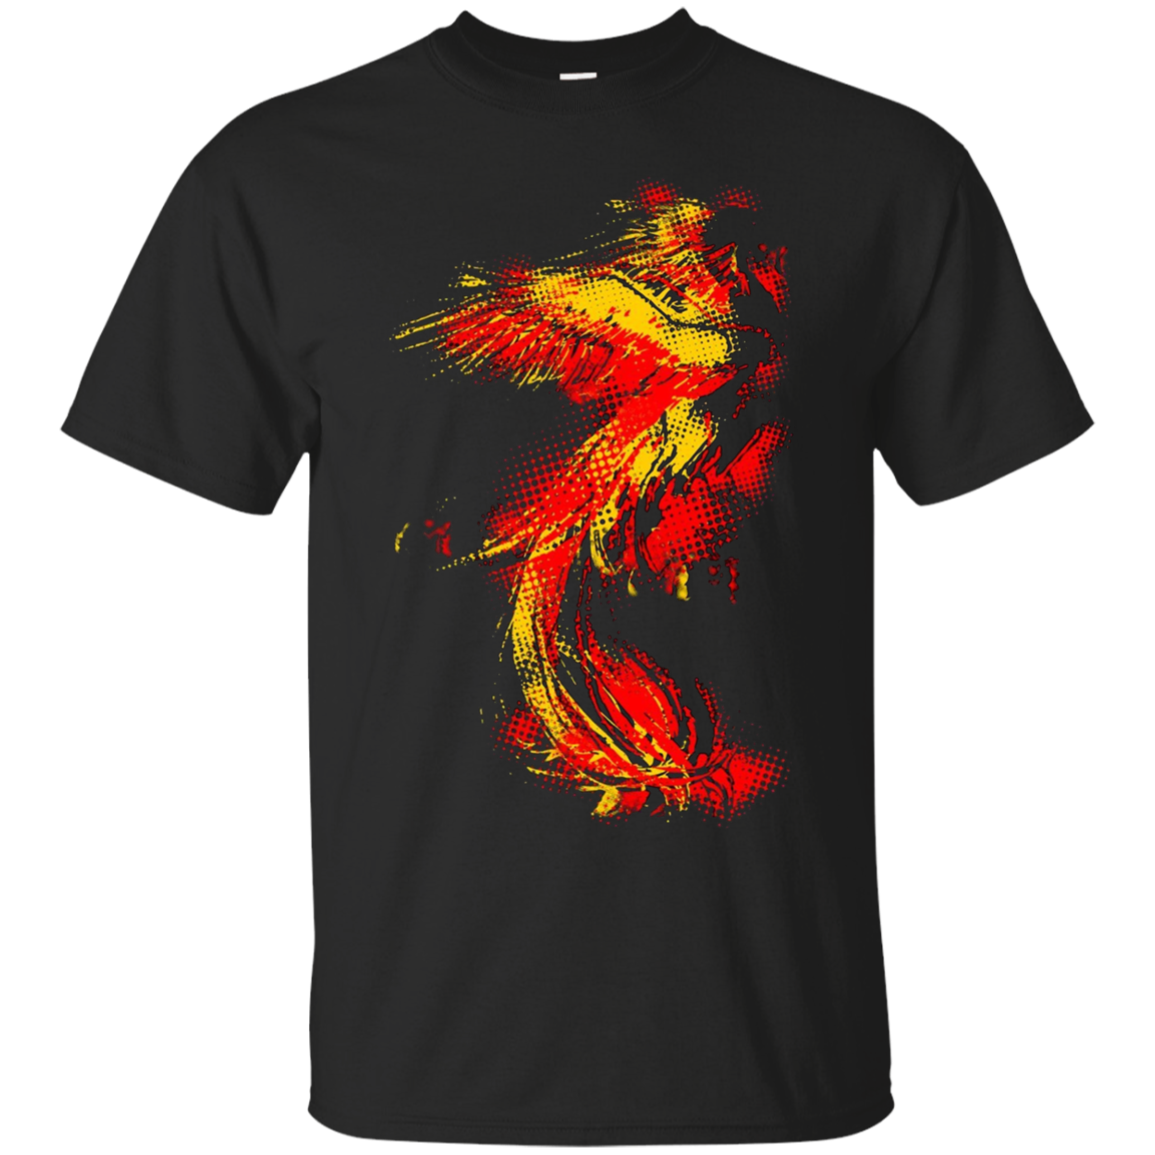 LiftOff Gothic Phoenix T-Shirt Motocycle Riders, Nature Gift